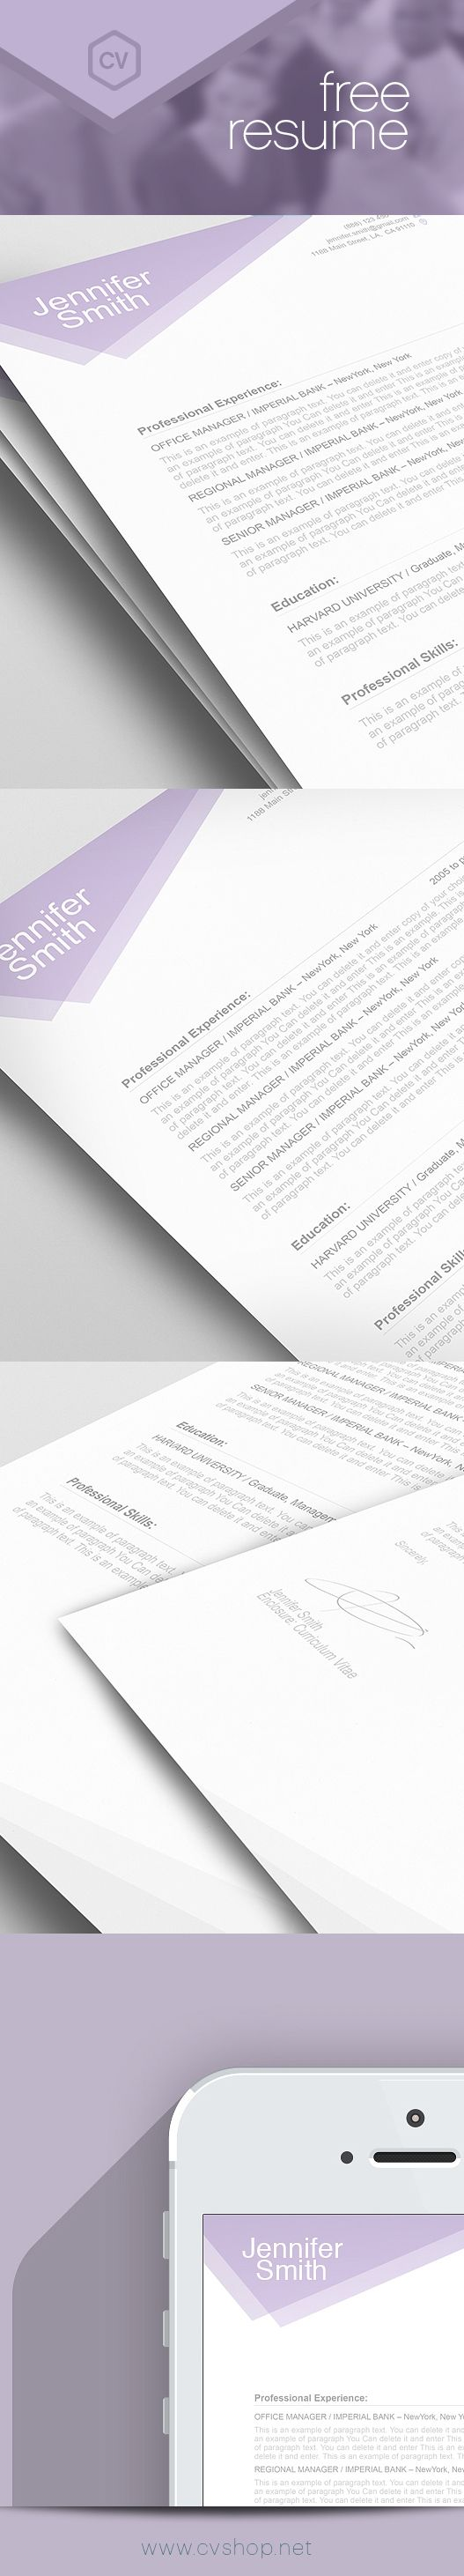 Best Free Resume Templates Images On   Resume Cover